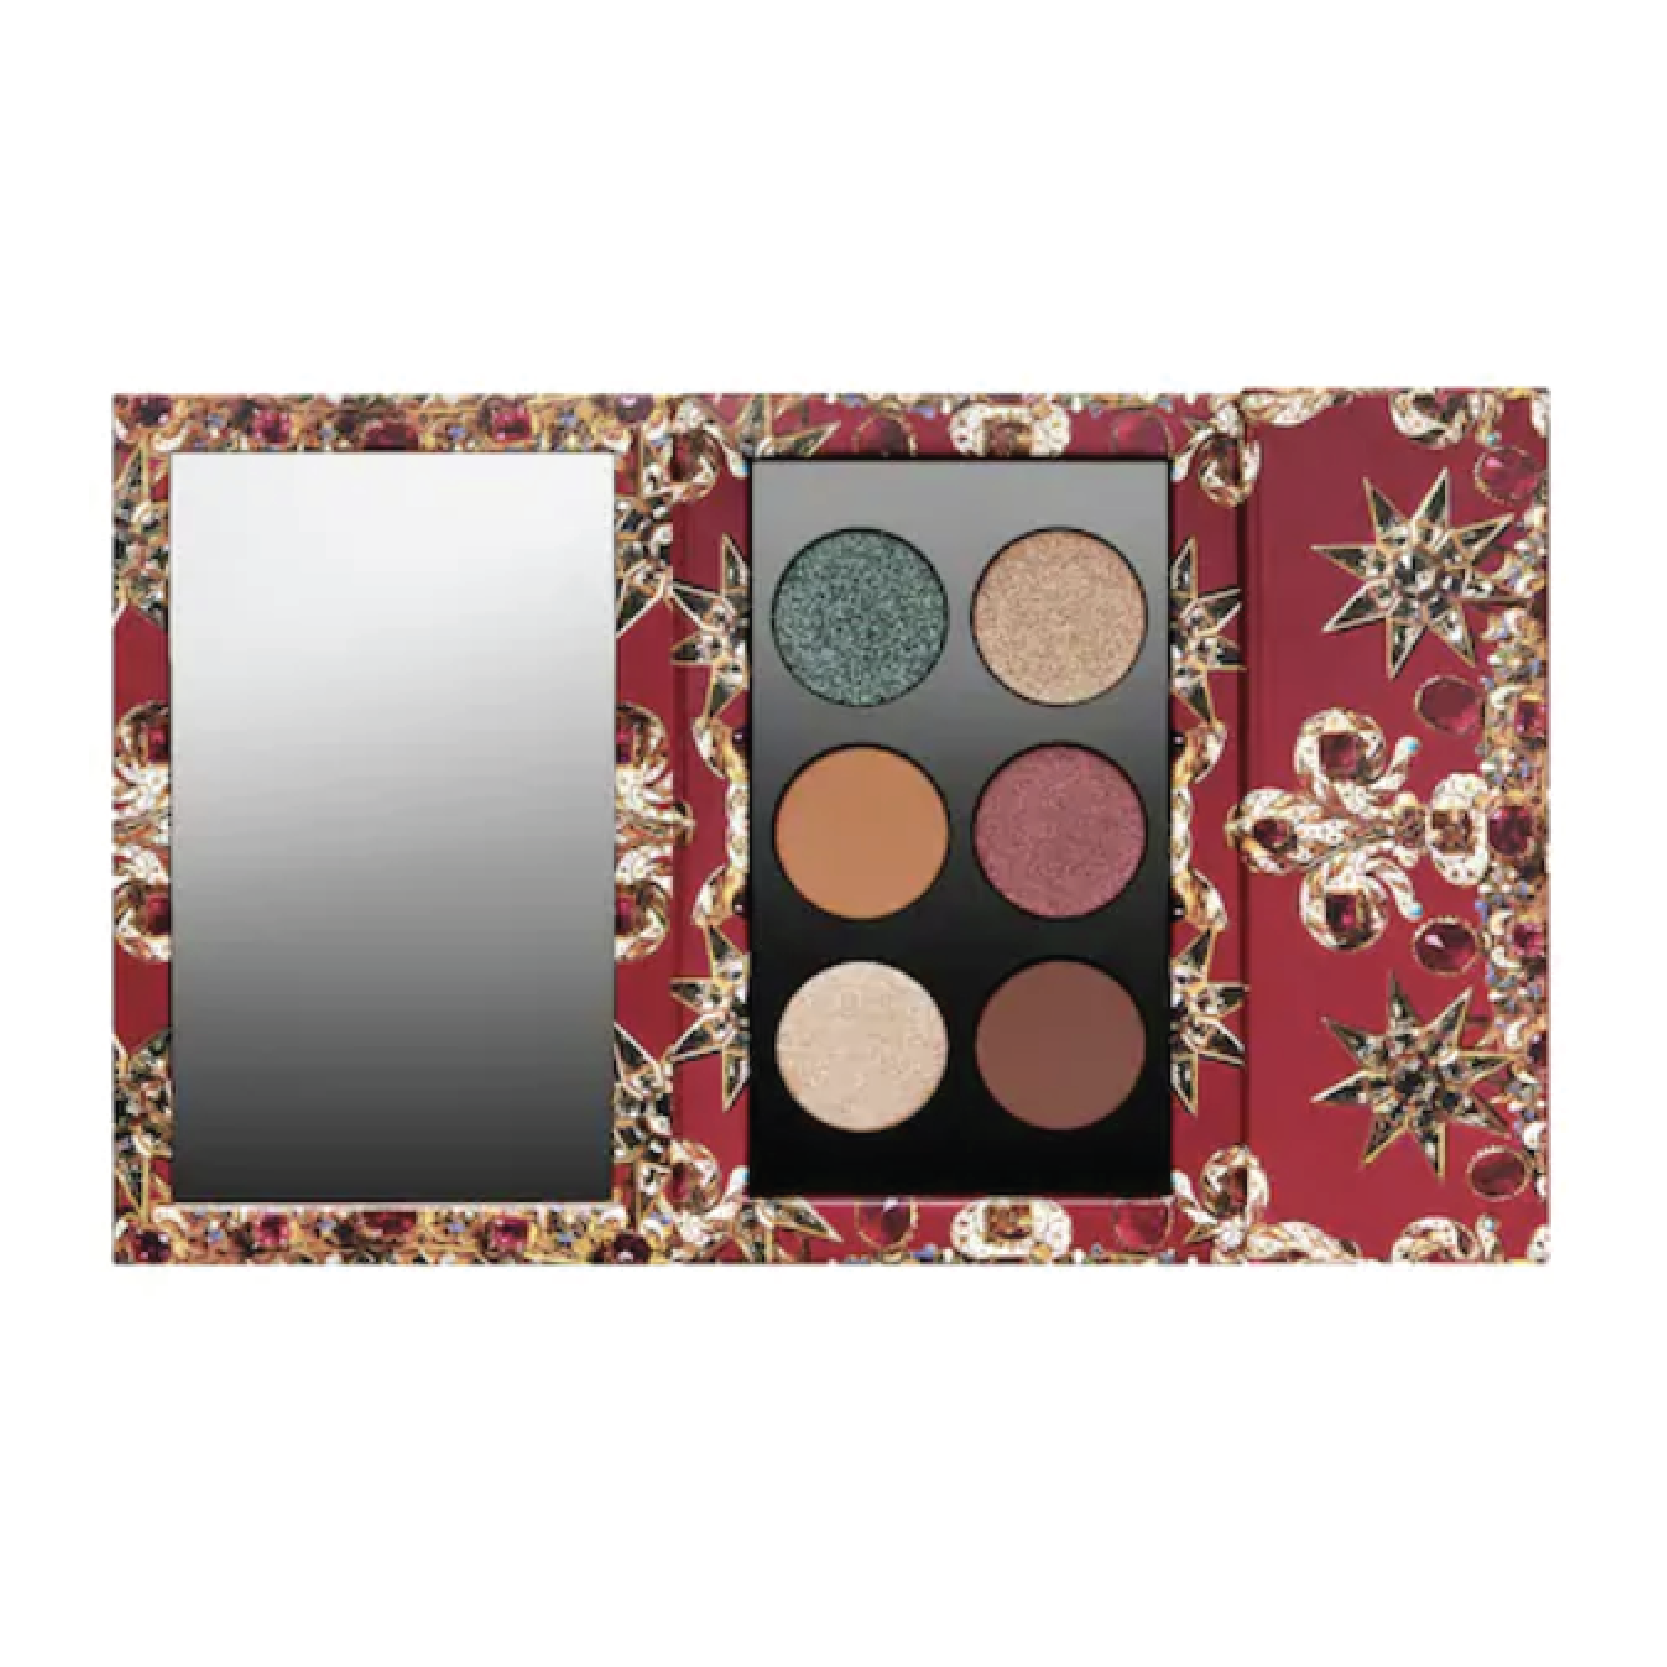 Pat McGrath Labs MTHRSHP Sublime Bronze Temptation Palette - $55 at SephoraAnother perfect palette, Pat McGrath honestly blinds me with how beautiful her swatches are. Any one of her palettes would make an incredible gift.